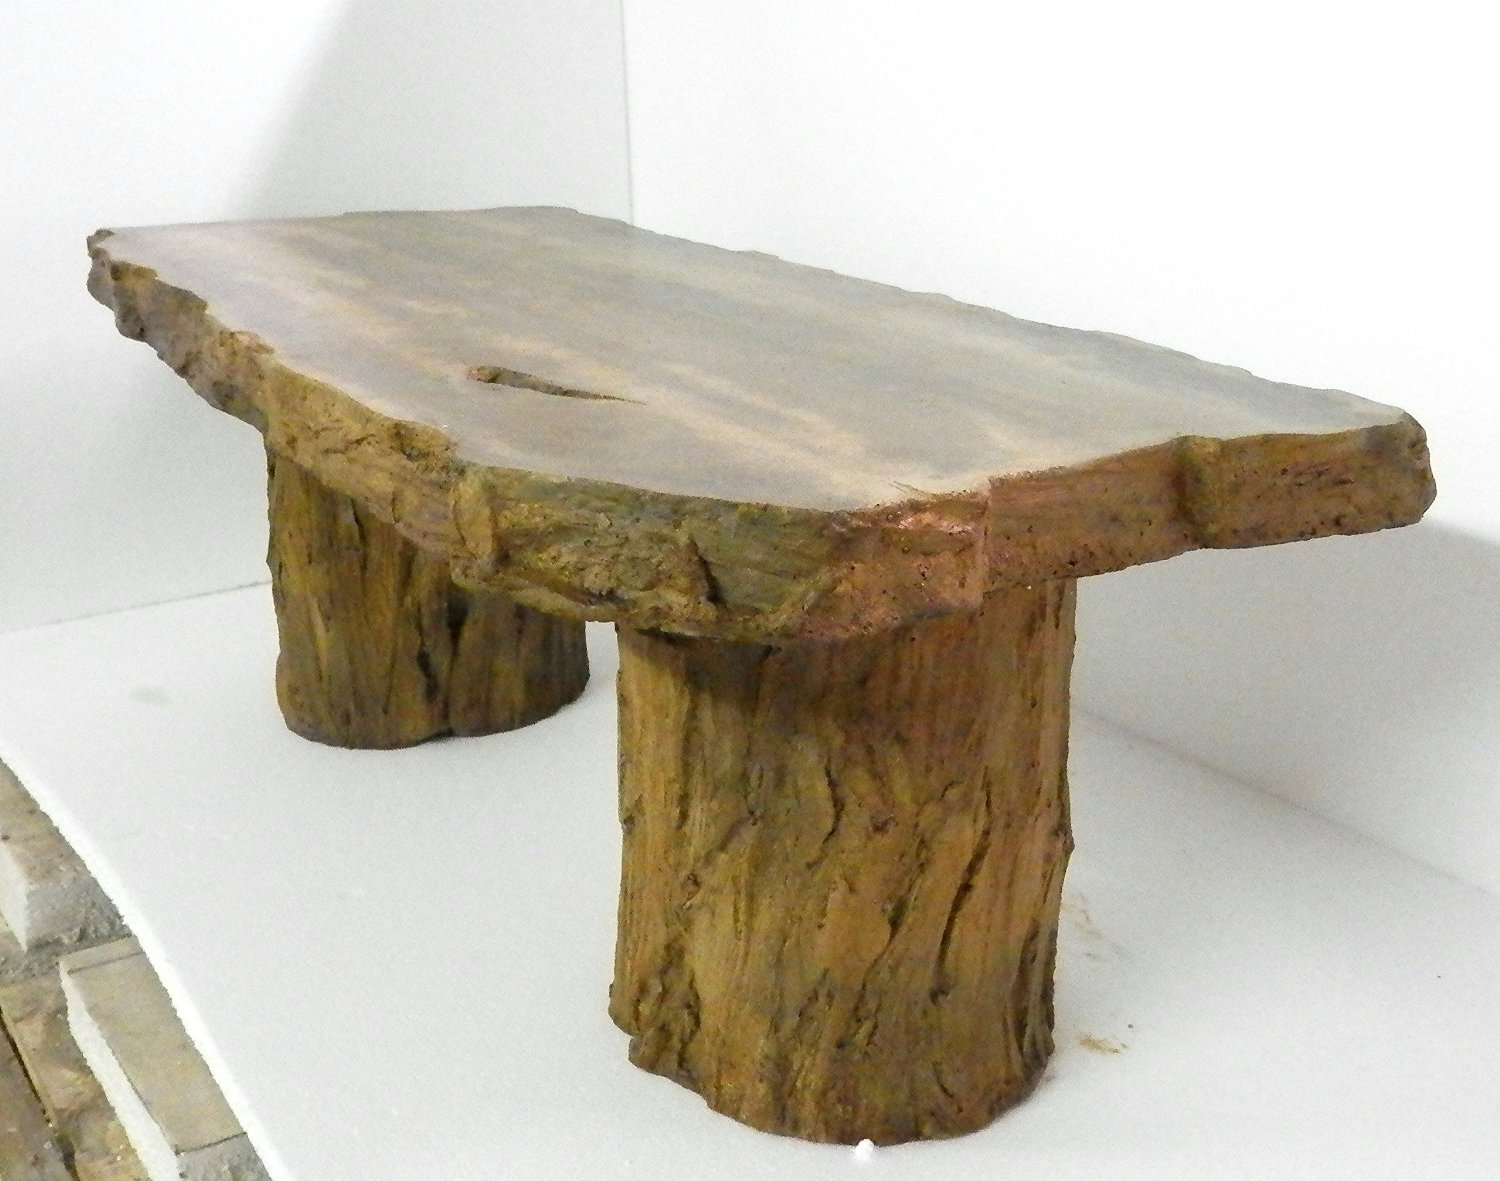 """Handmade Fossilized Bench Concrete Table, CF-302 Petrified Log Bench """"Cast Stone Petrified Wood Table, """"Outdoor Garden Patio Bench"""""""